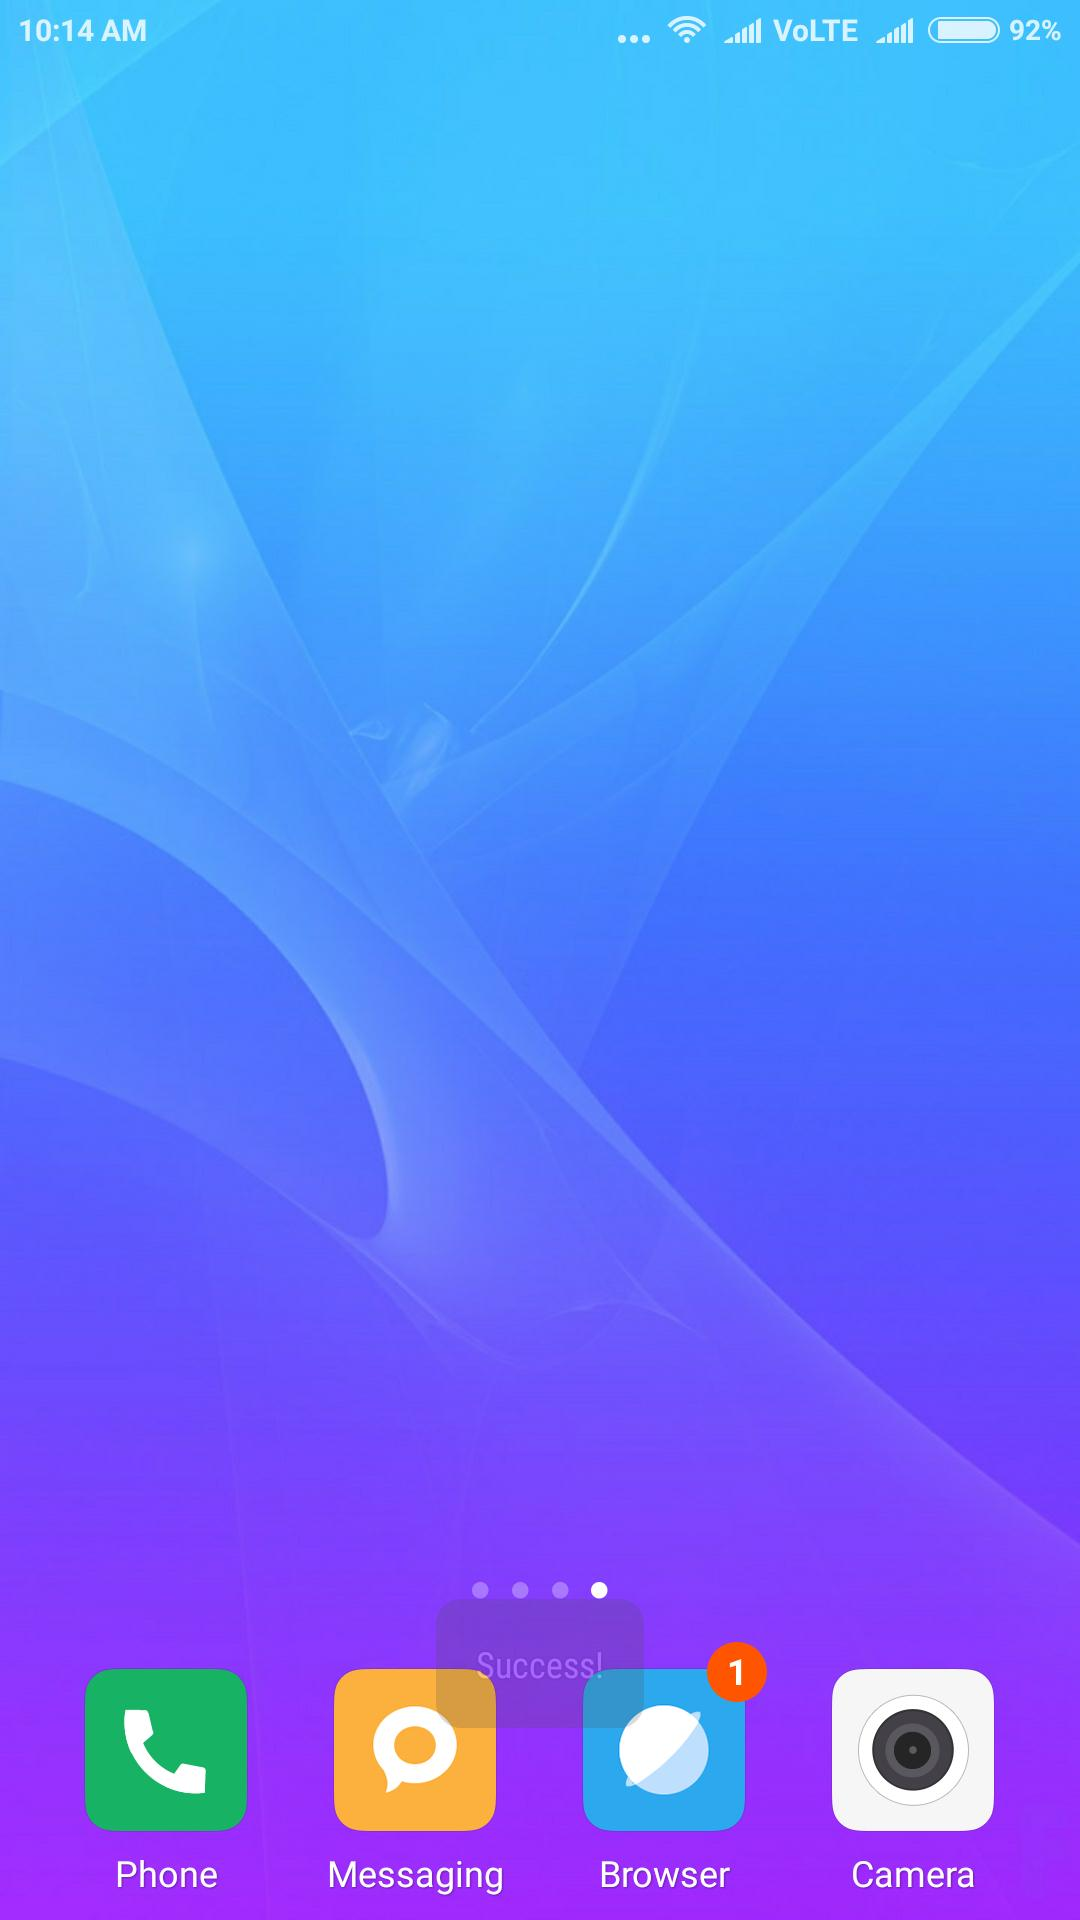 HD Wallpaper for Gionee A1 for Android - APK Download